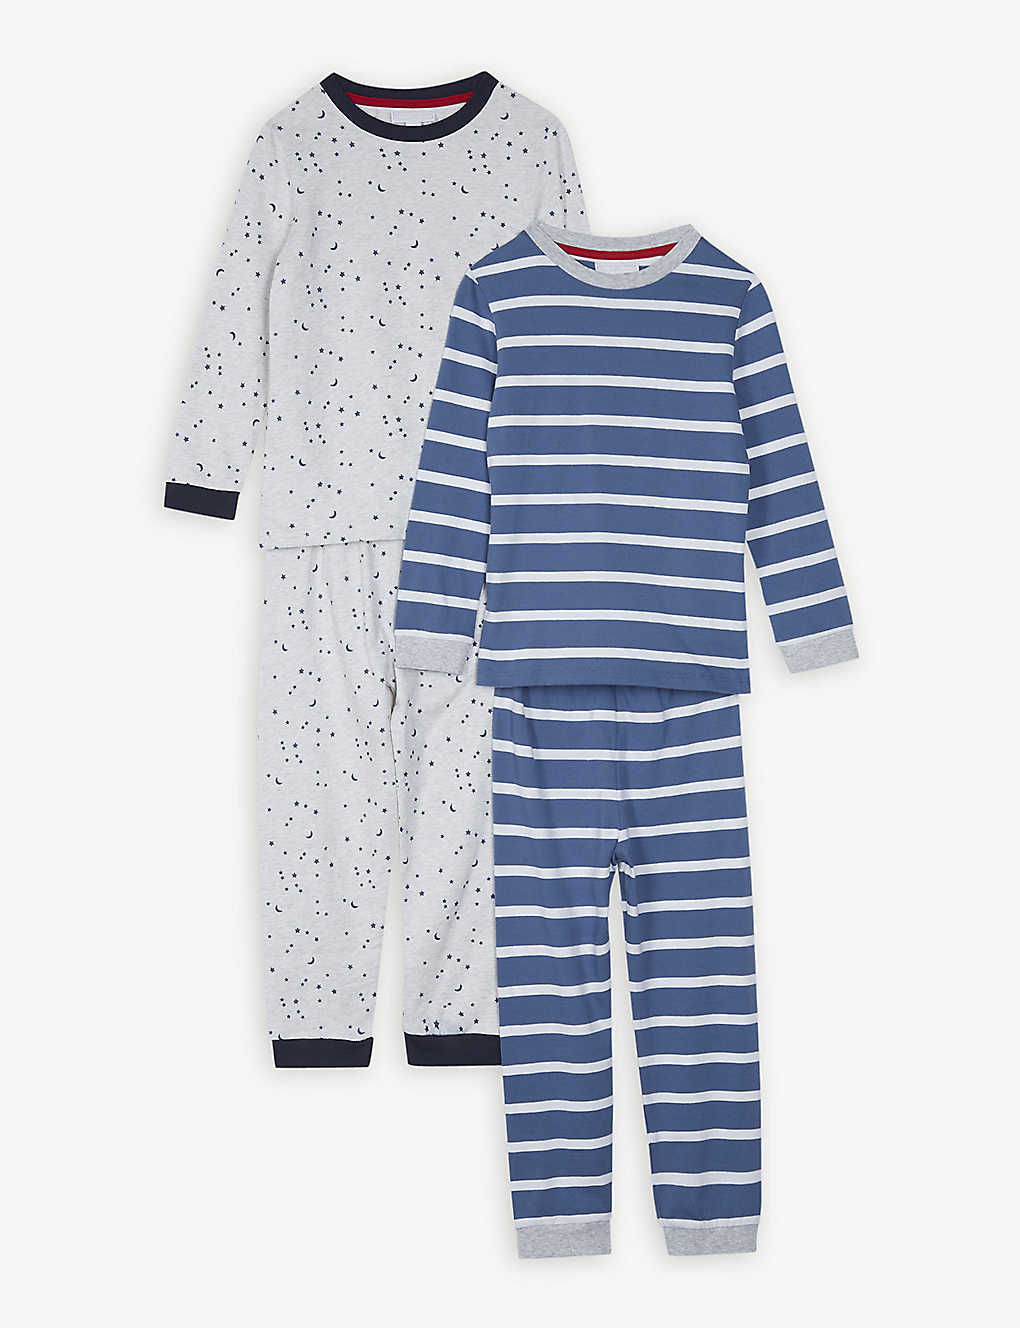 8a19a31083a1d THE LITTLE WHITE COMPANY - Star and stripe cotton pyjamas set of two ...